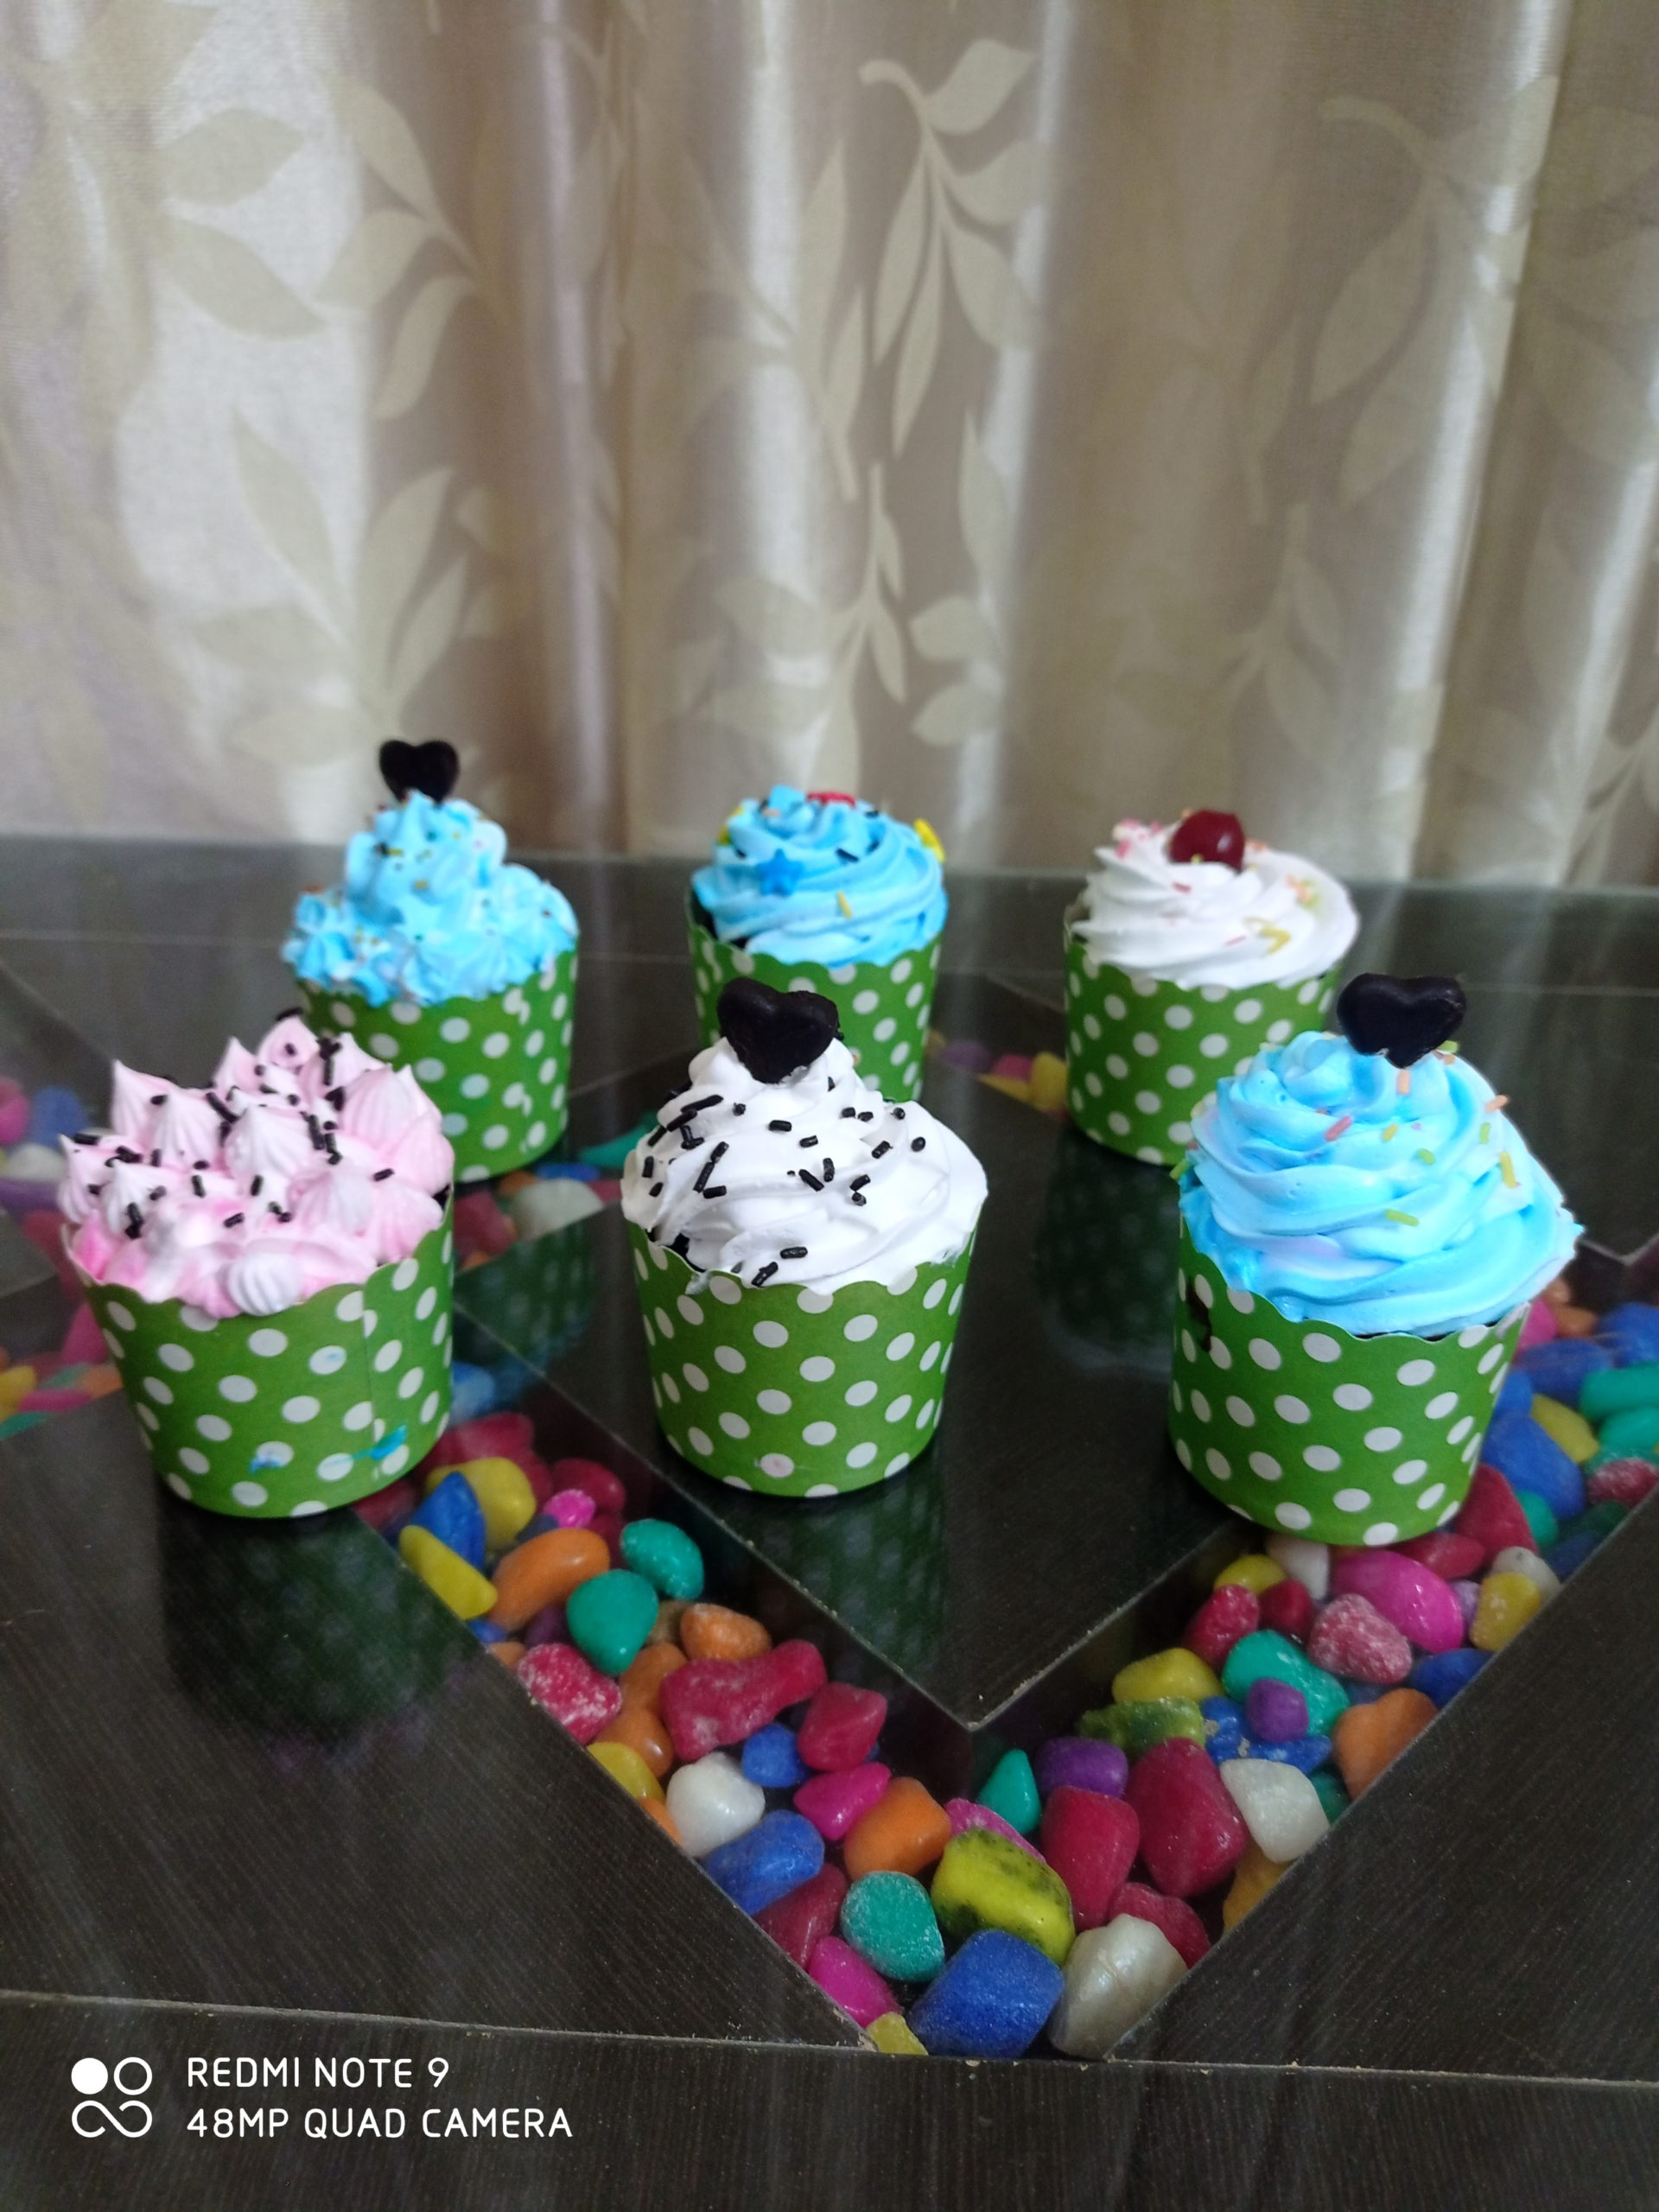 Cup Cakes(6 Pcs) Designs, Images, Price Near Me